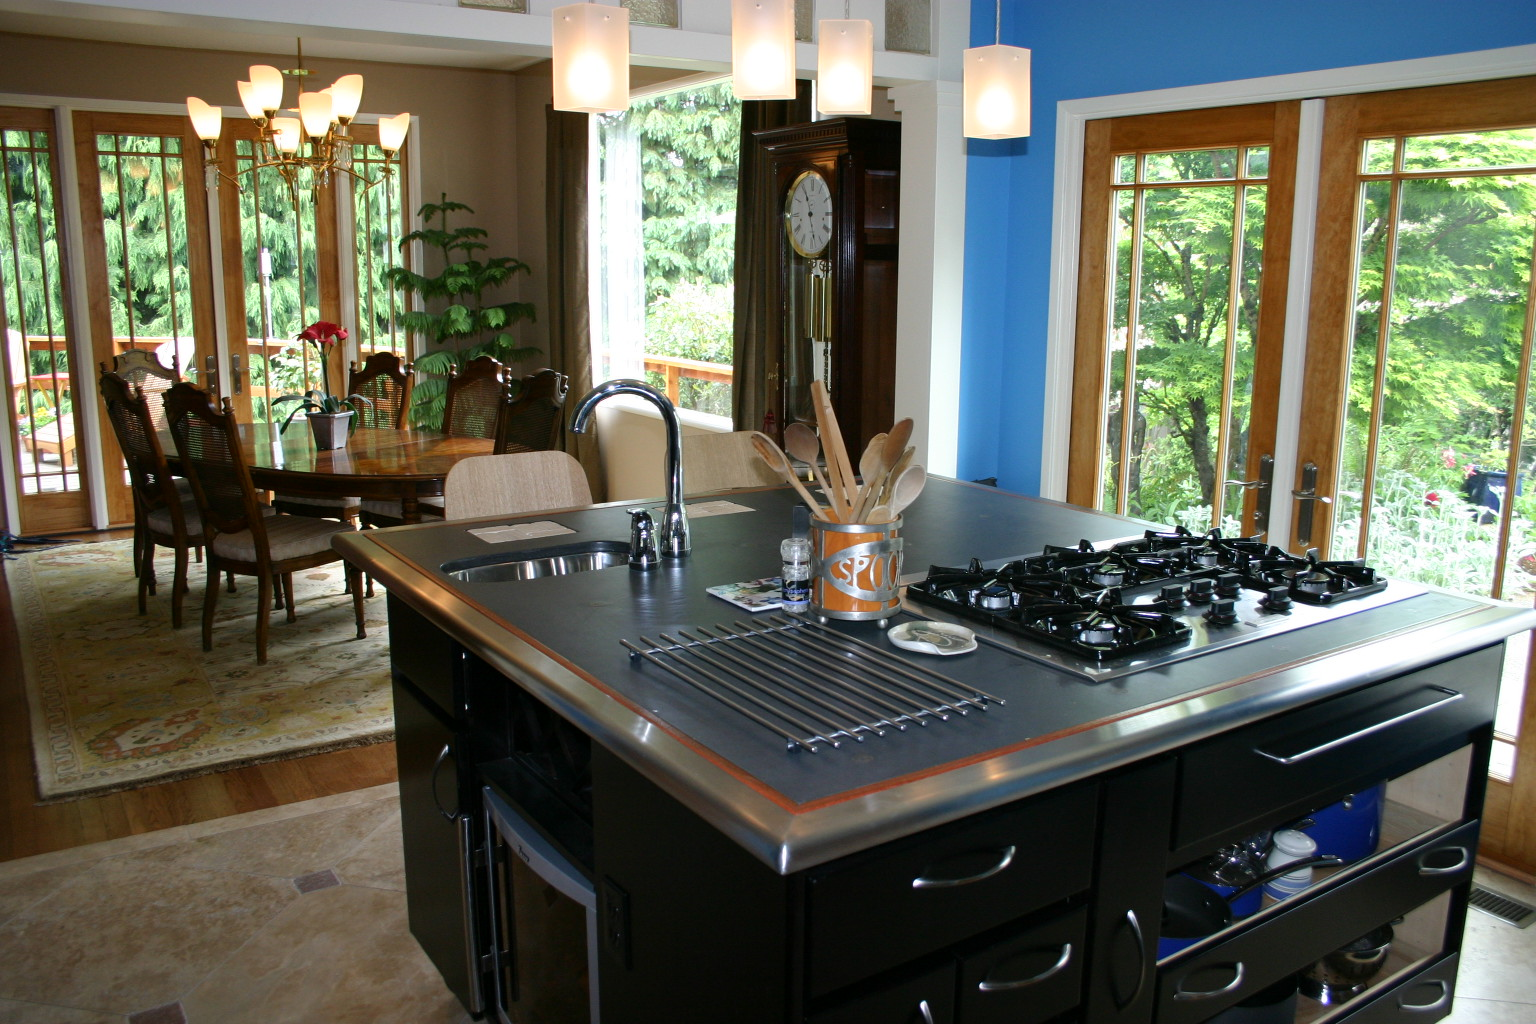 Remodel, dining room, kitchen, home renovation, Portland, Kaya Construction, Kaya General Contractors, Portland Remodeler